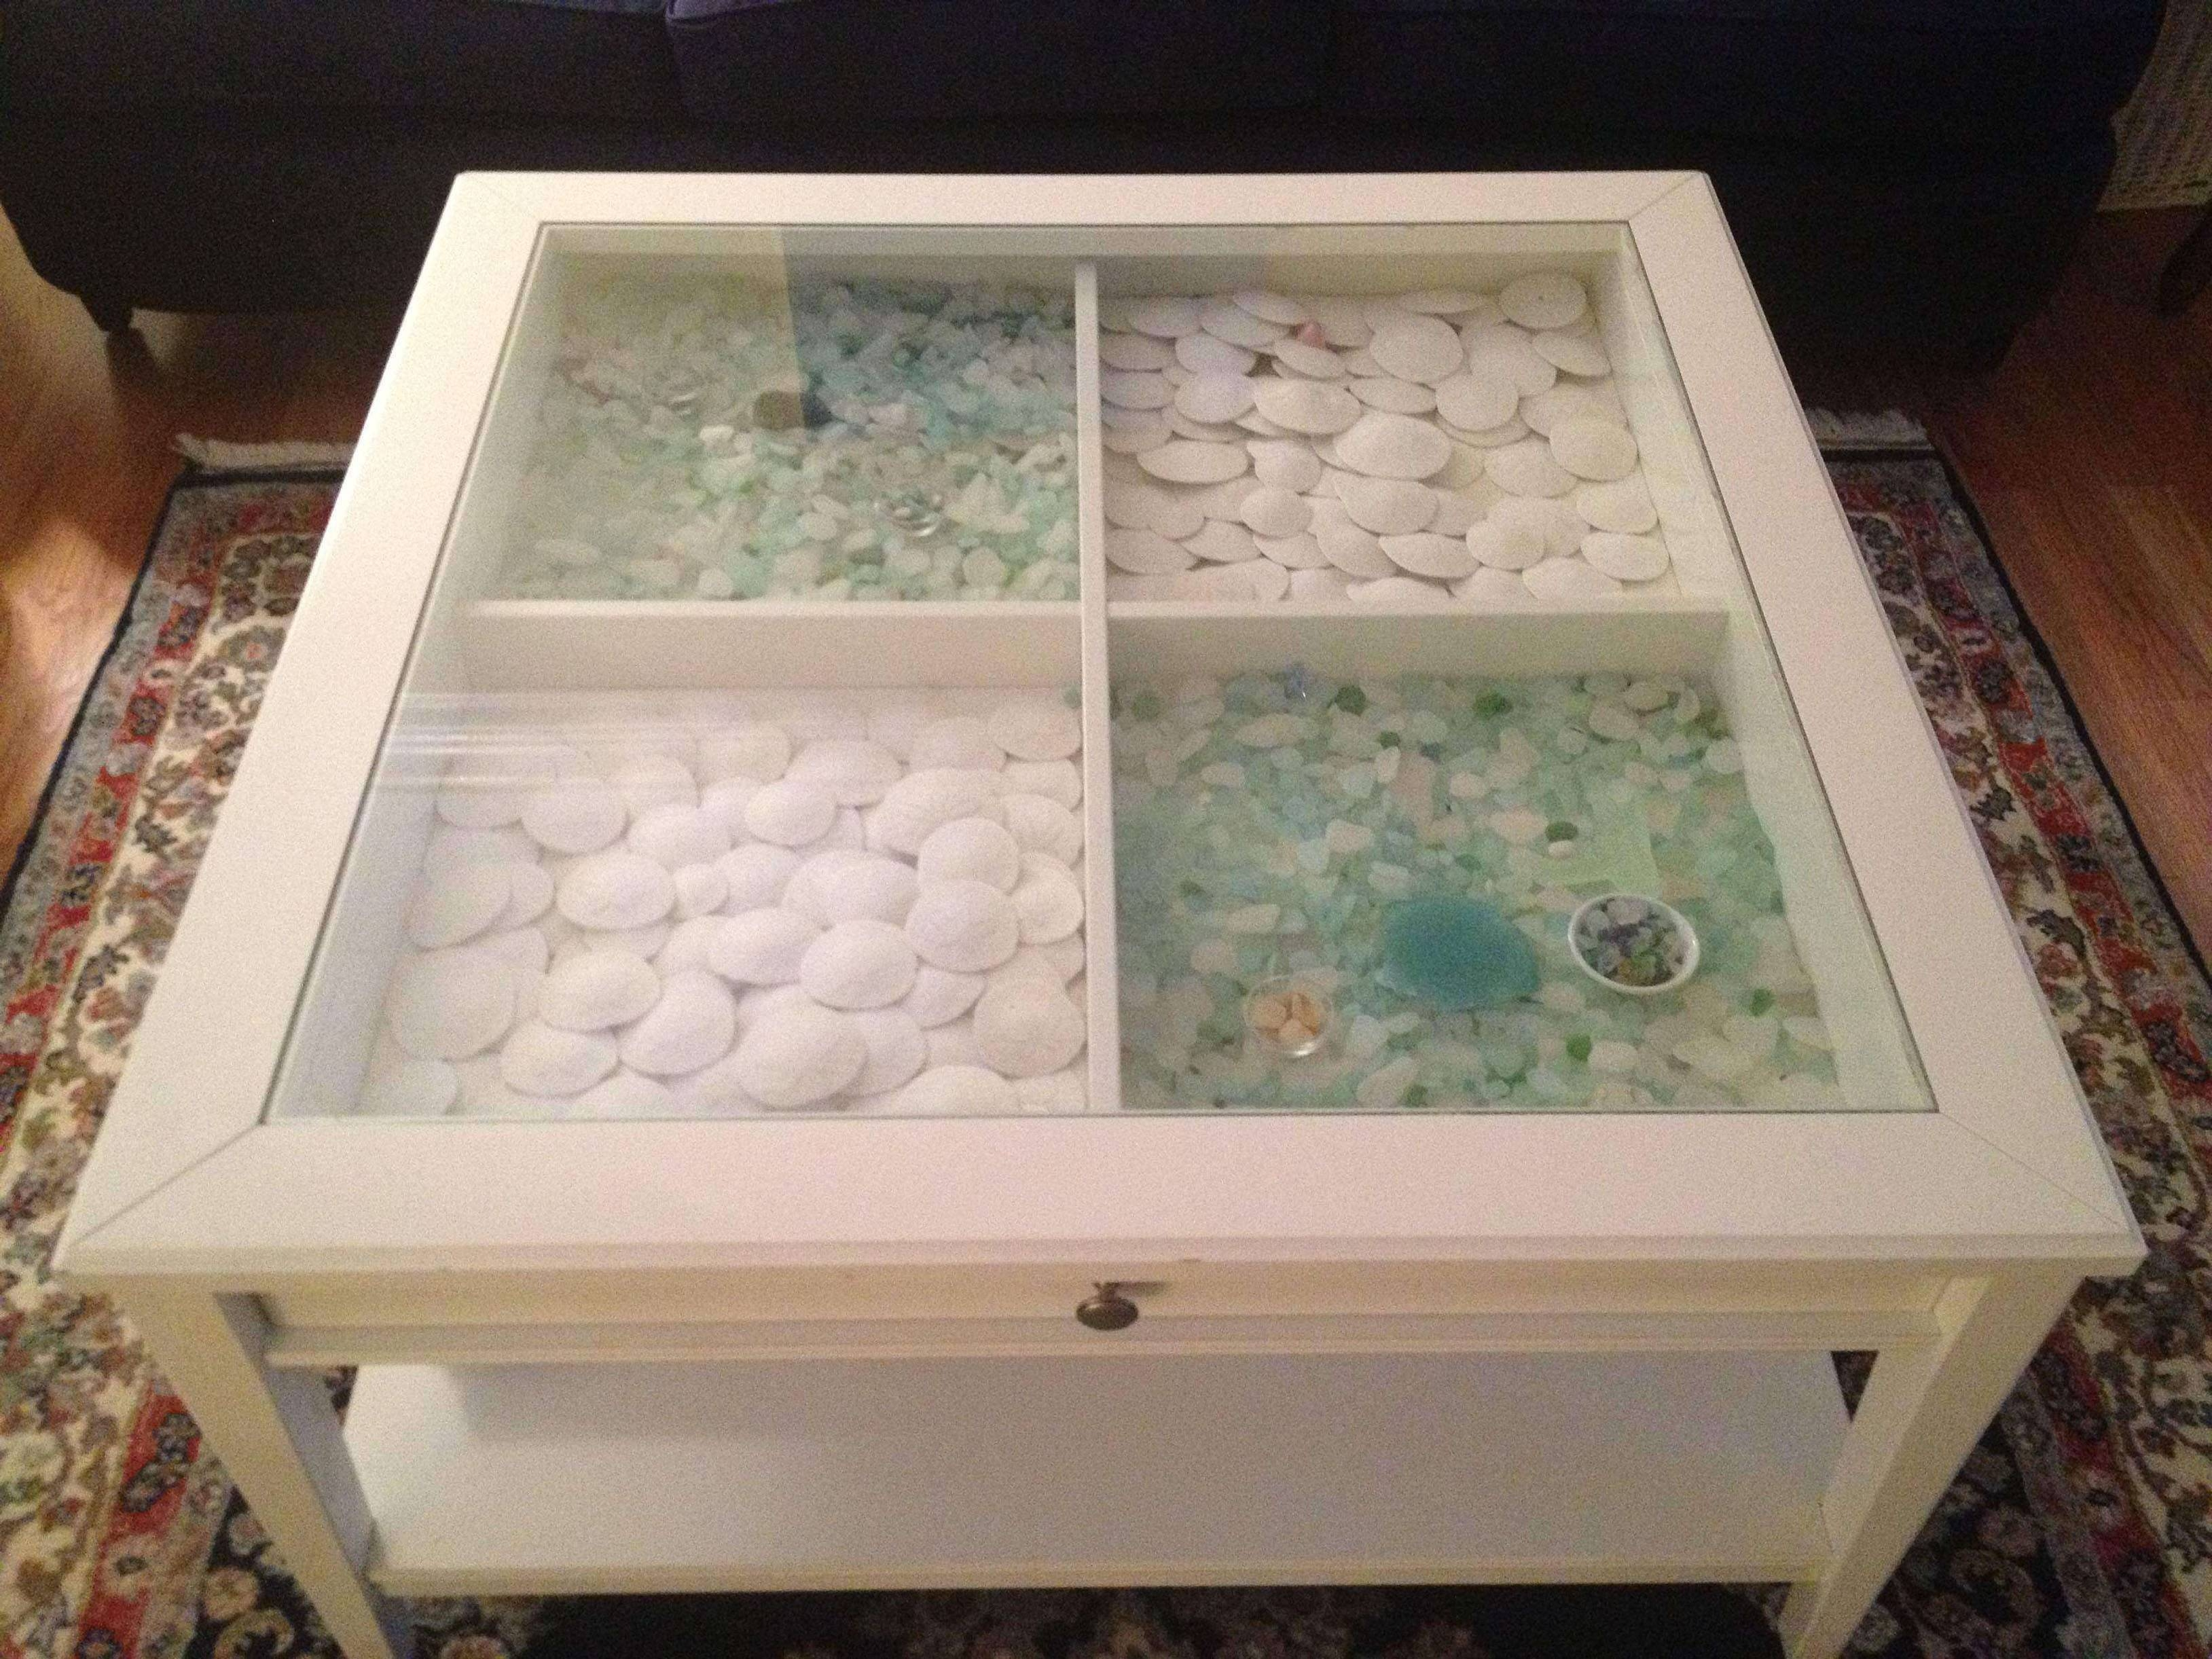 Simple Glass Top Display Coffee Table With Drawers inside Glass Top Display Coffee Tables With Drawers (Image 29 of 30)